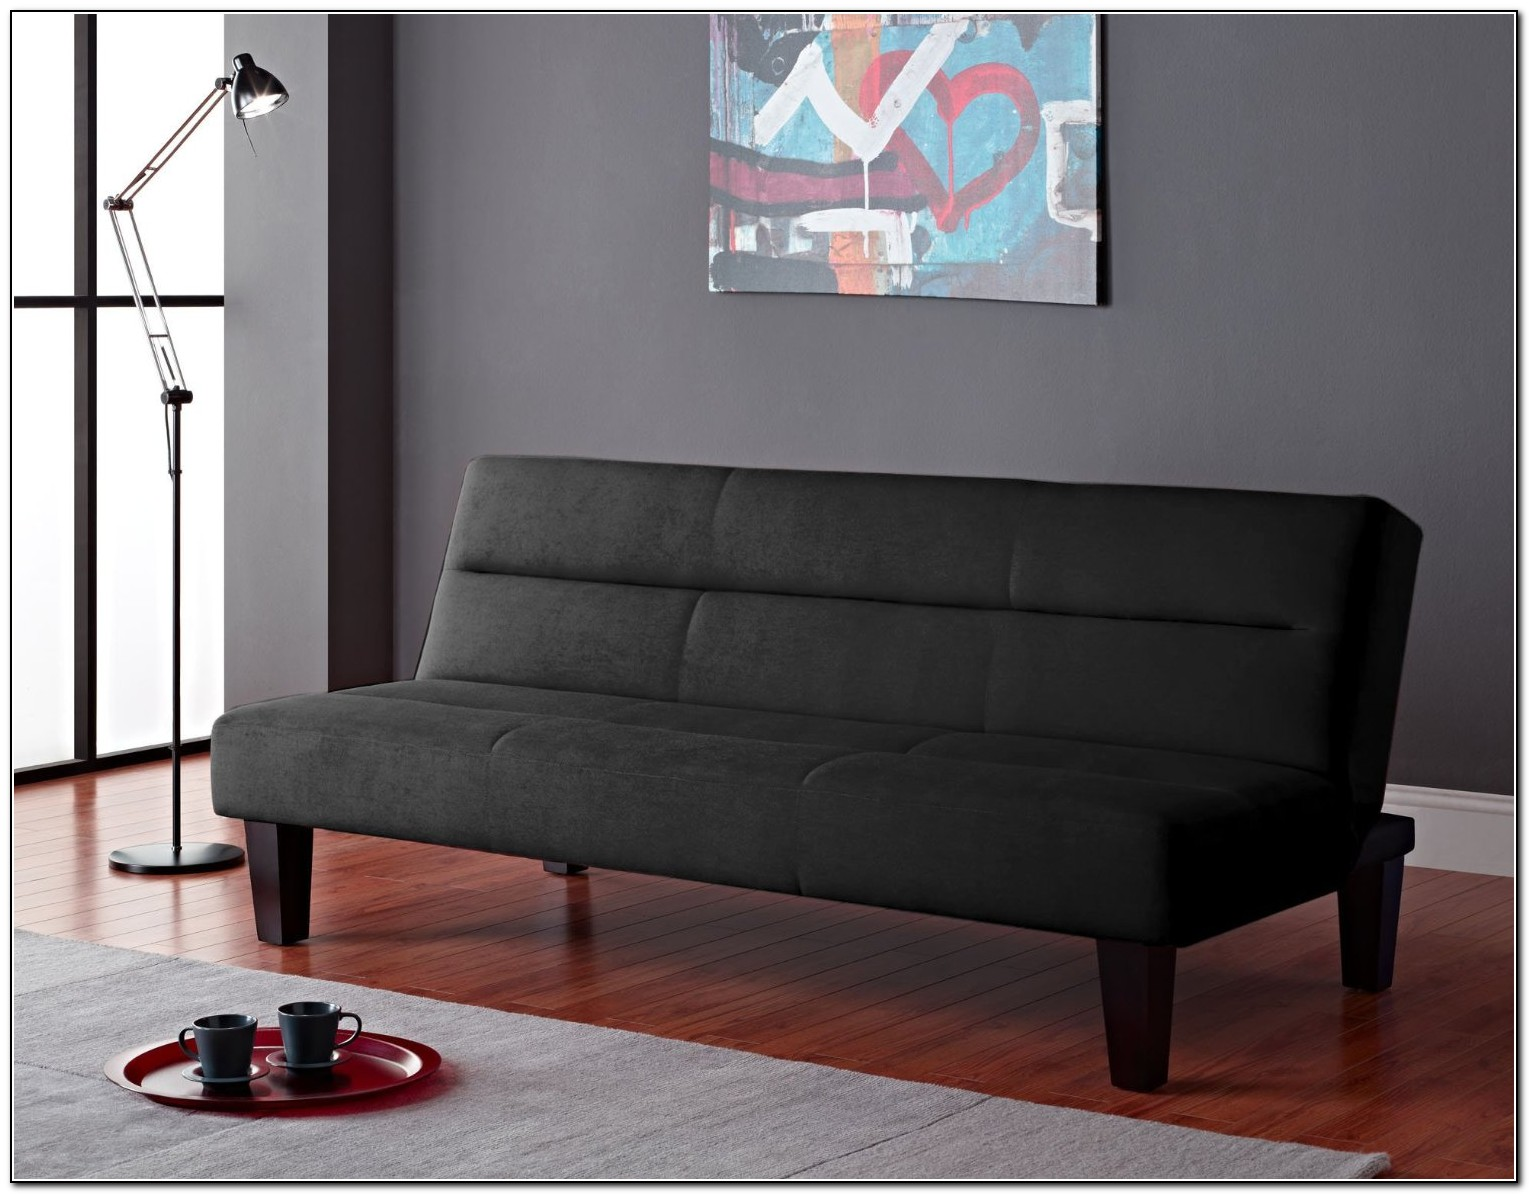 Kebo Futon Sofa Bed Red Sofa Home Design Ideas